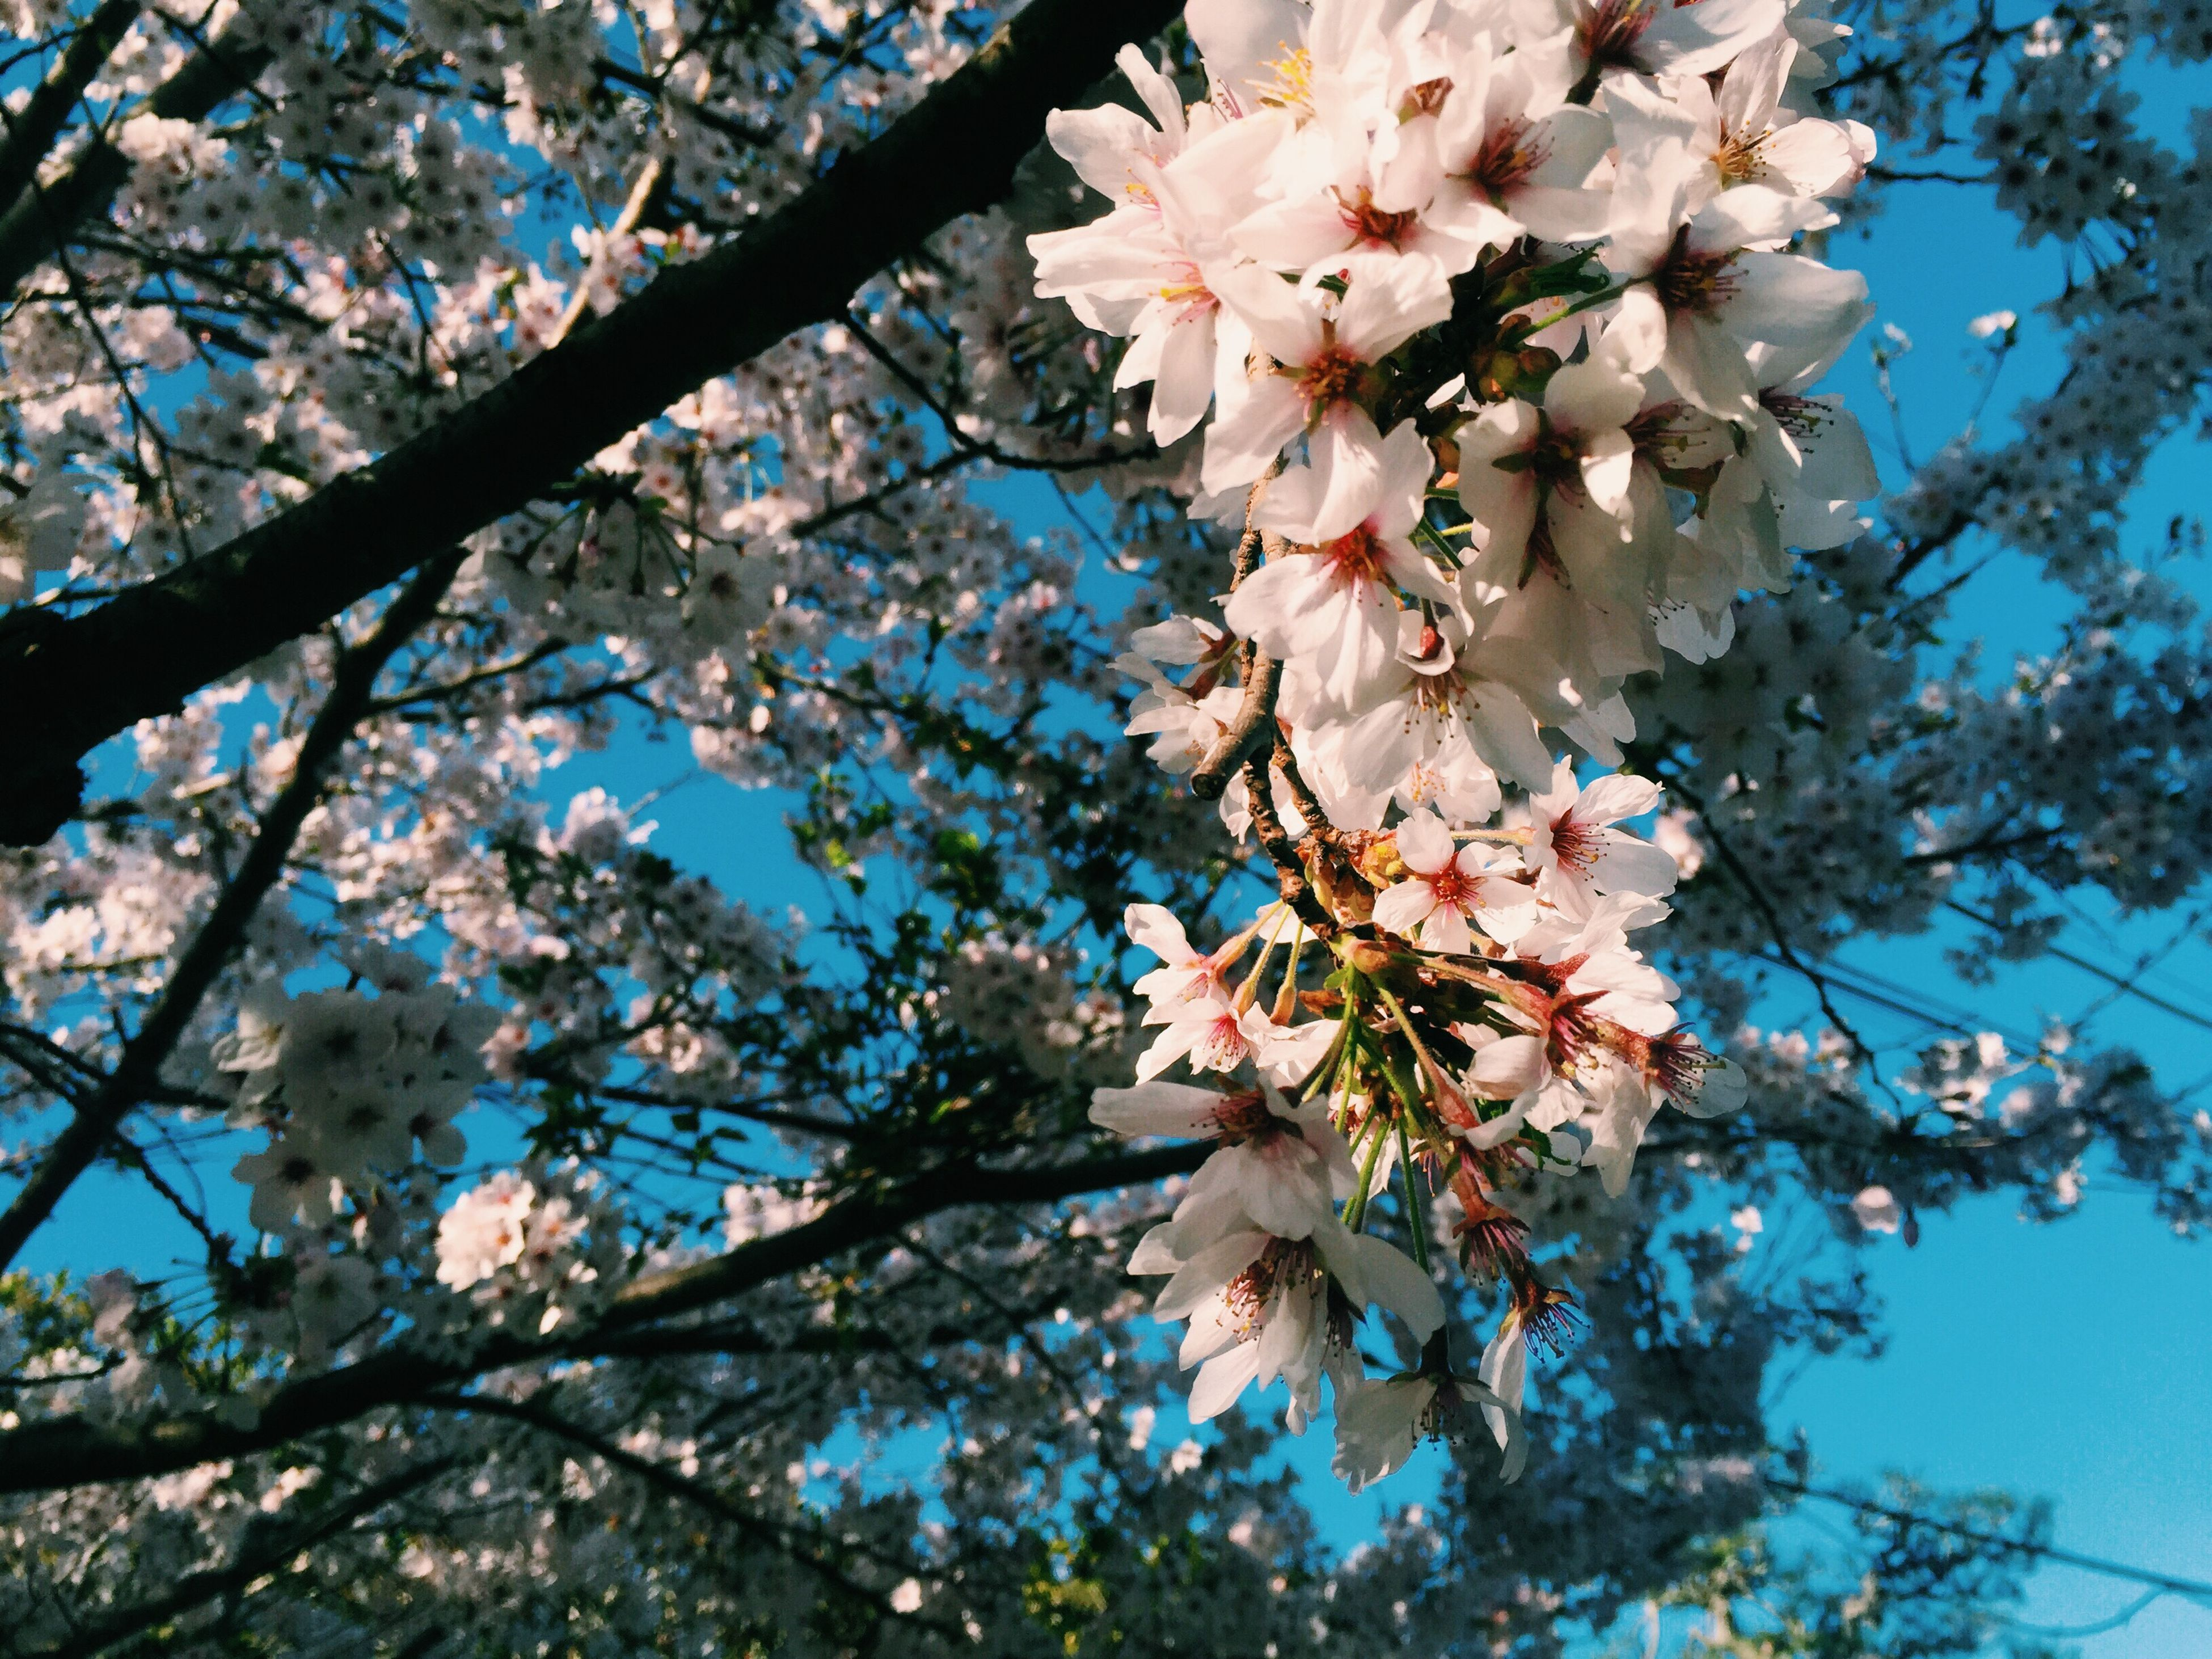 flower, low angle view, branch, tree, freshness, growth, fragility, blossom, cherry blossom, beauty in nature, nature, sky, cherry tree, blue, in bloom, blooming, springtime, petal, fruit tree, day